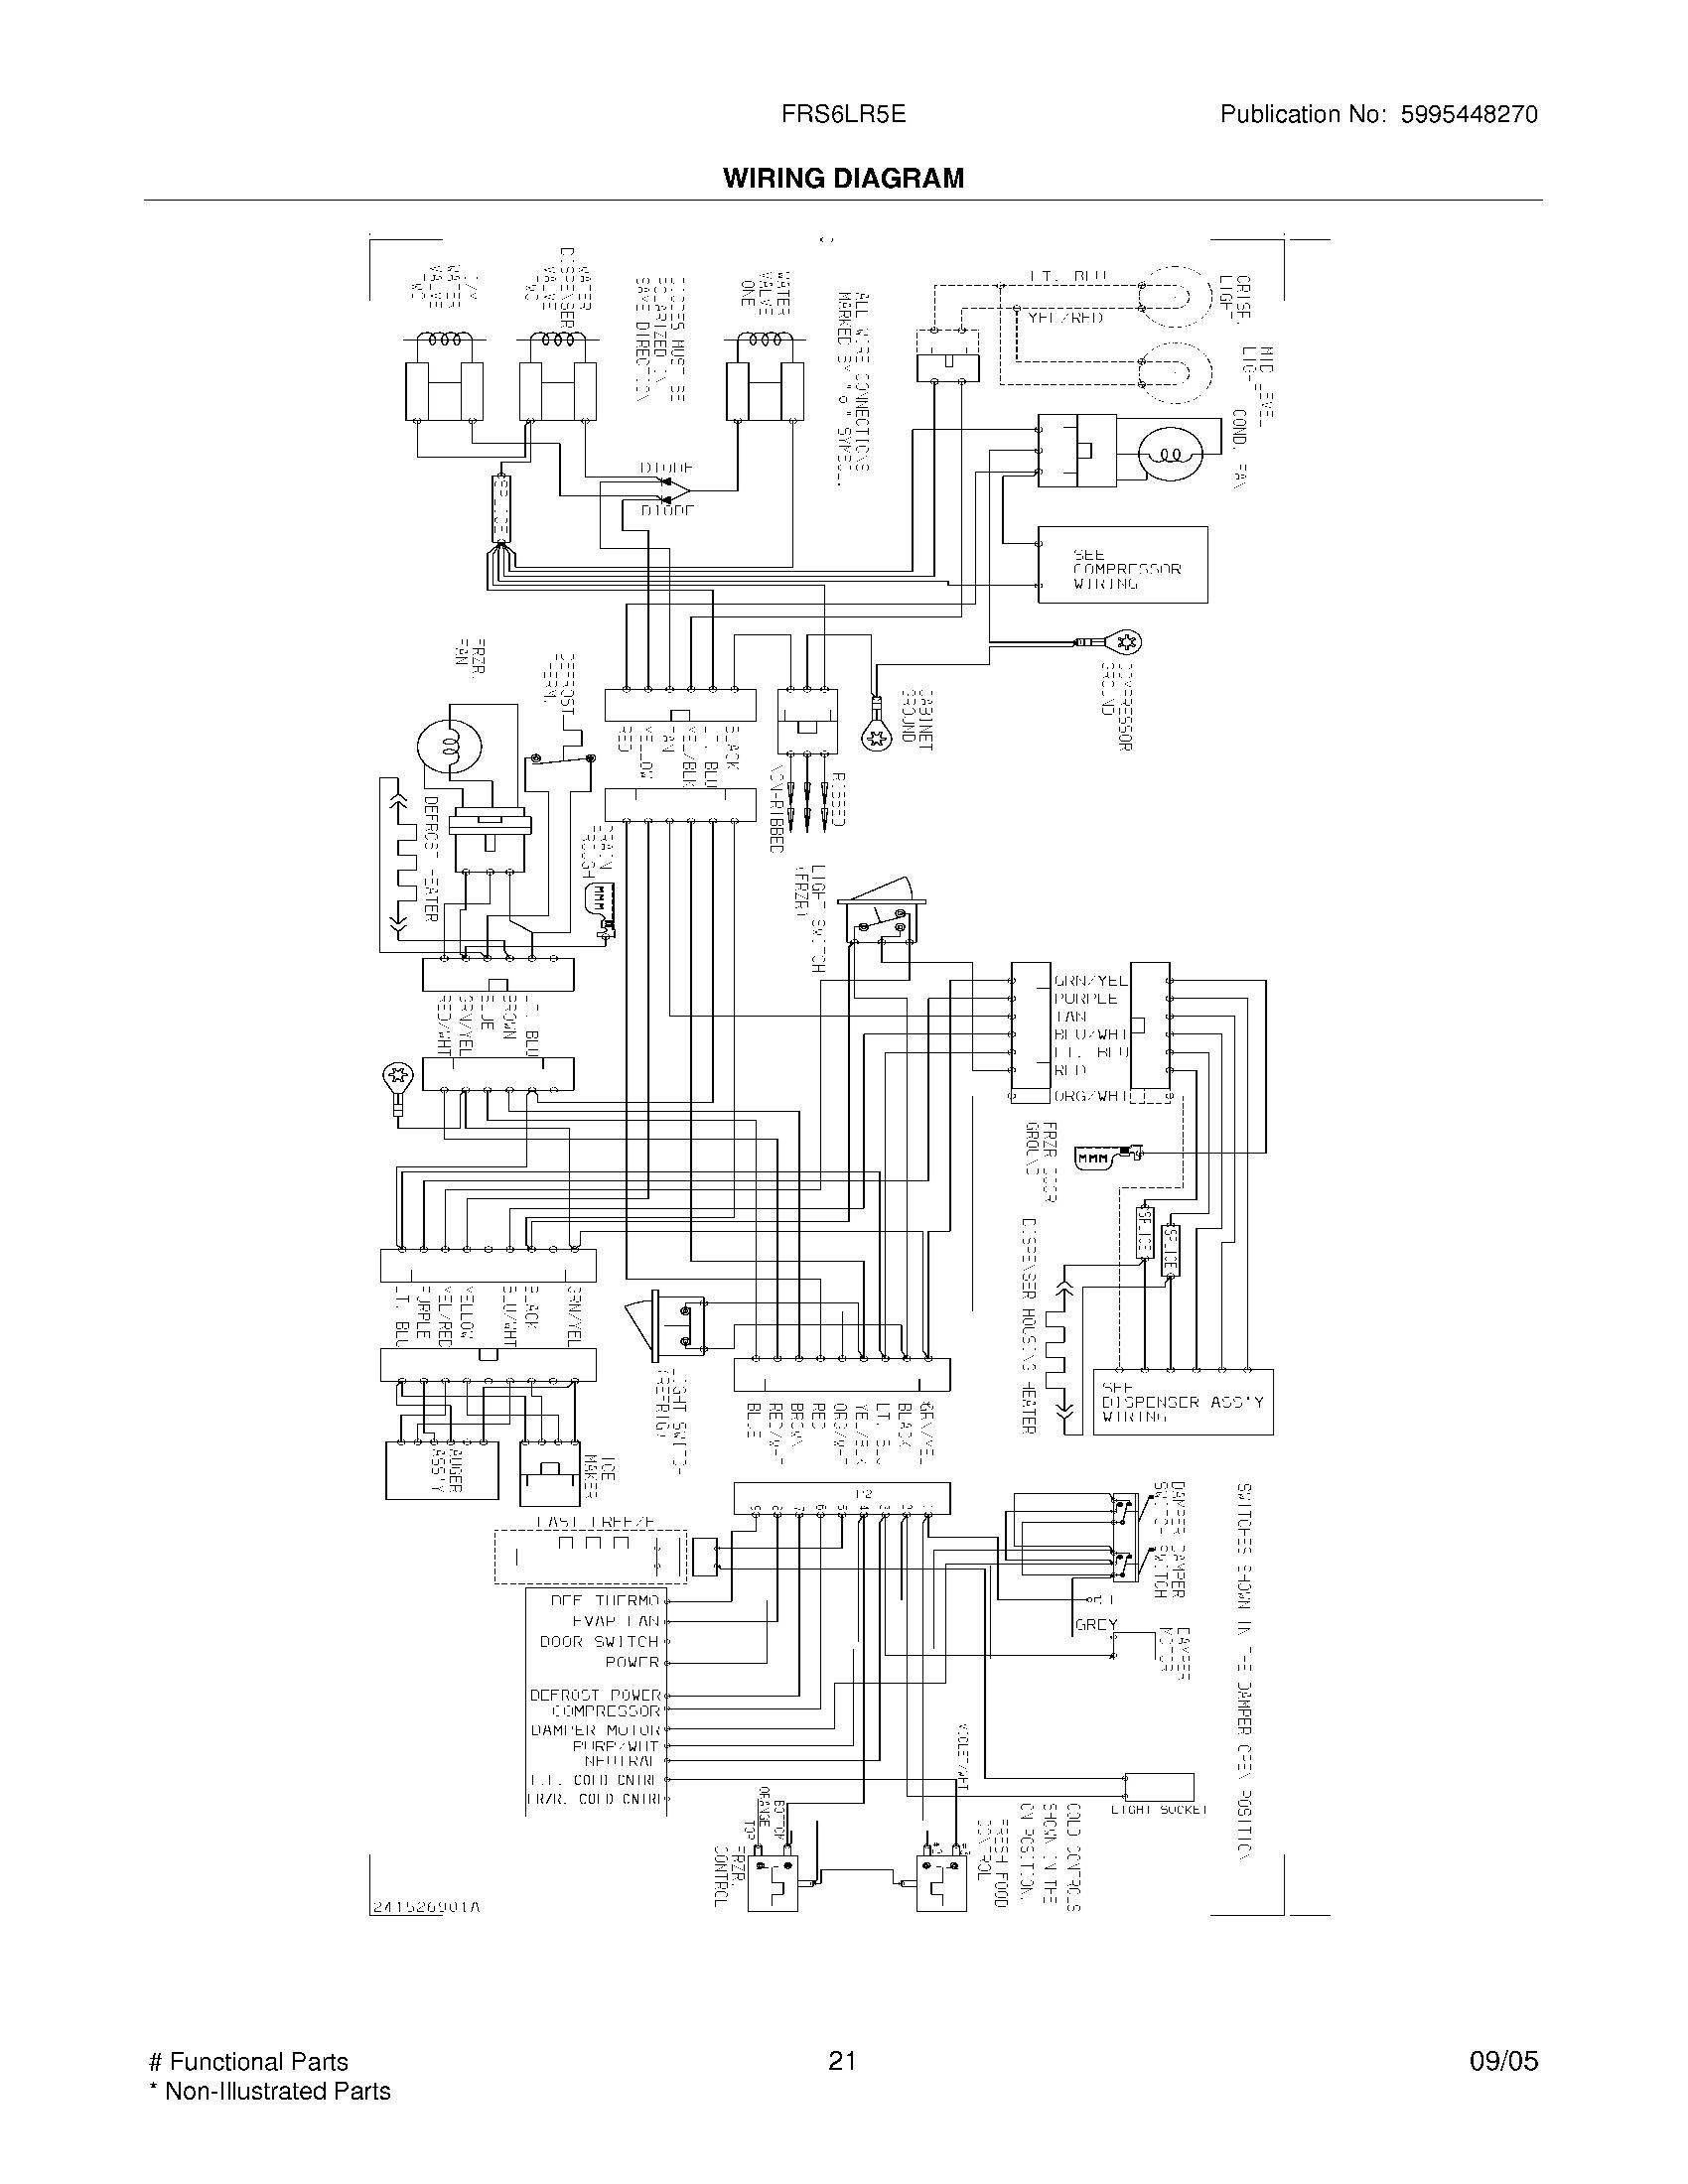 Trailmaster Wiring Diagram All Kind Of Diagrams 150 Schematic General Motors Starter 2006 Honda Civic Light Switch Mini Xrx